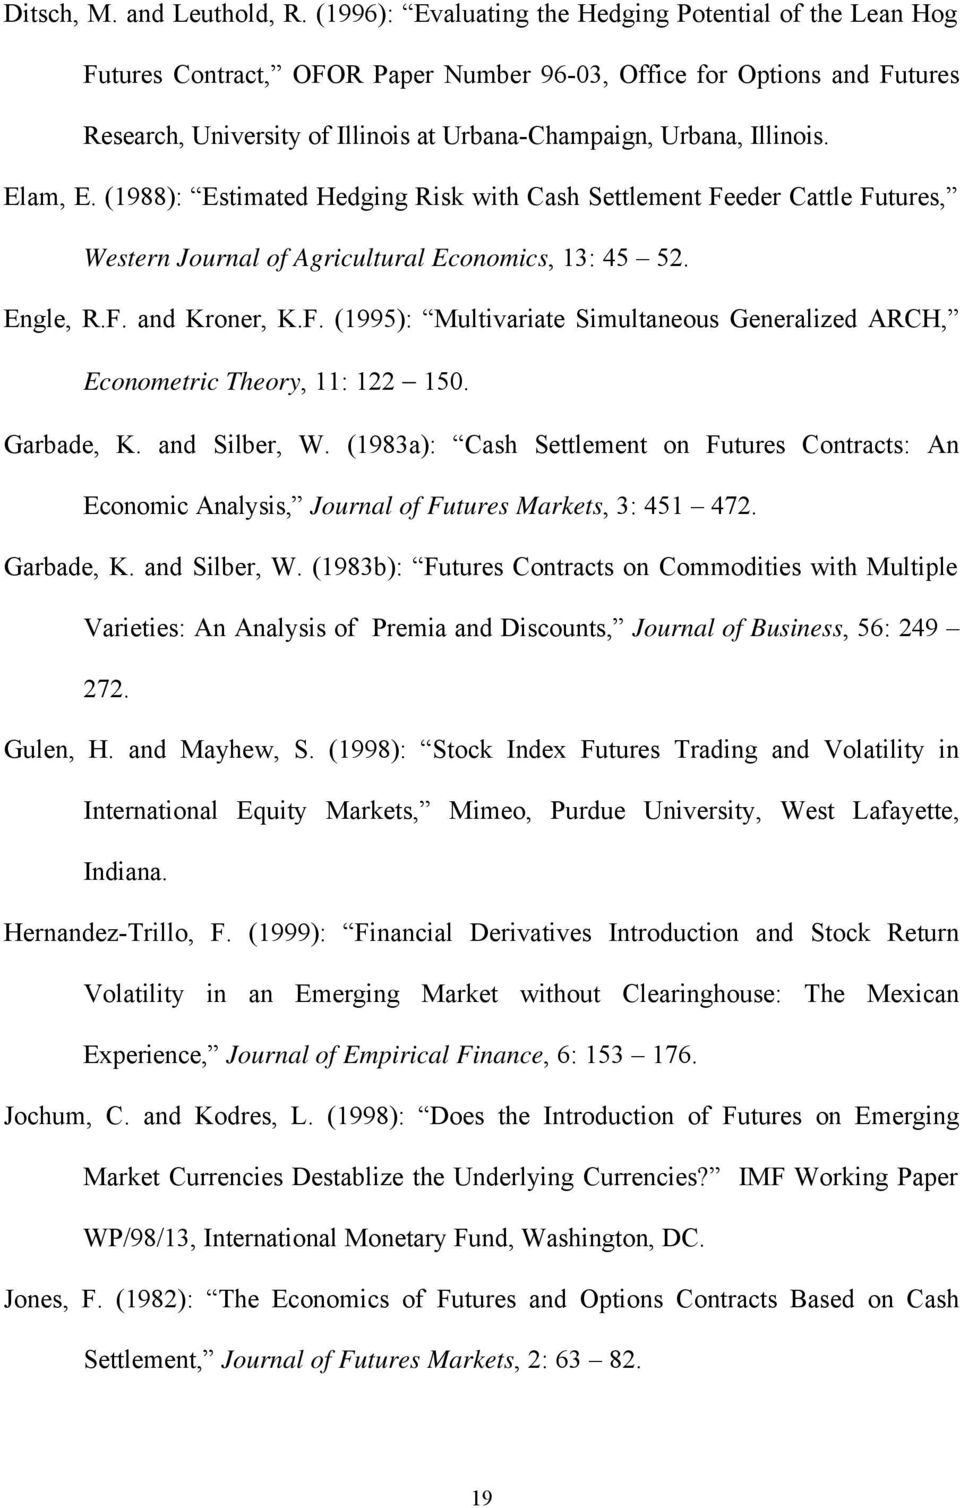 Illinois. Elam, E. (988): Estimated Hedging Risk with Cash Settlement Feeder Cattle Futures, Western Journal of Agricultural Economics, 3: 45 52. Engle, R.F. and Kroner, K.F. (995): Multivariate Simultaneous Generalized ARCH, Econometric Theory, : 22 50.